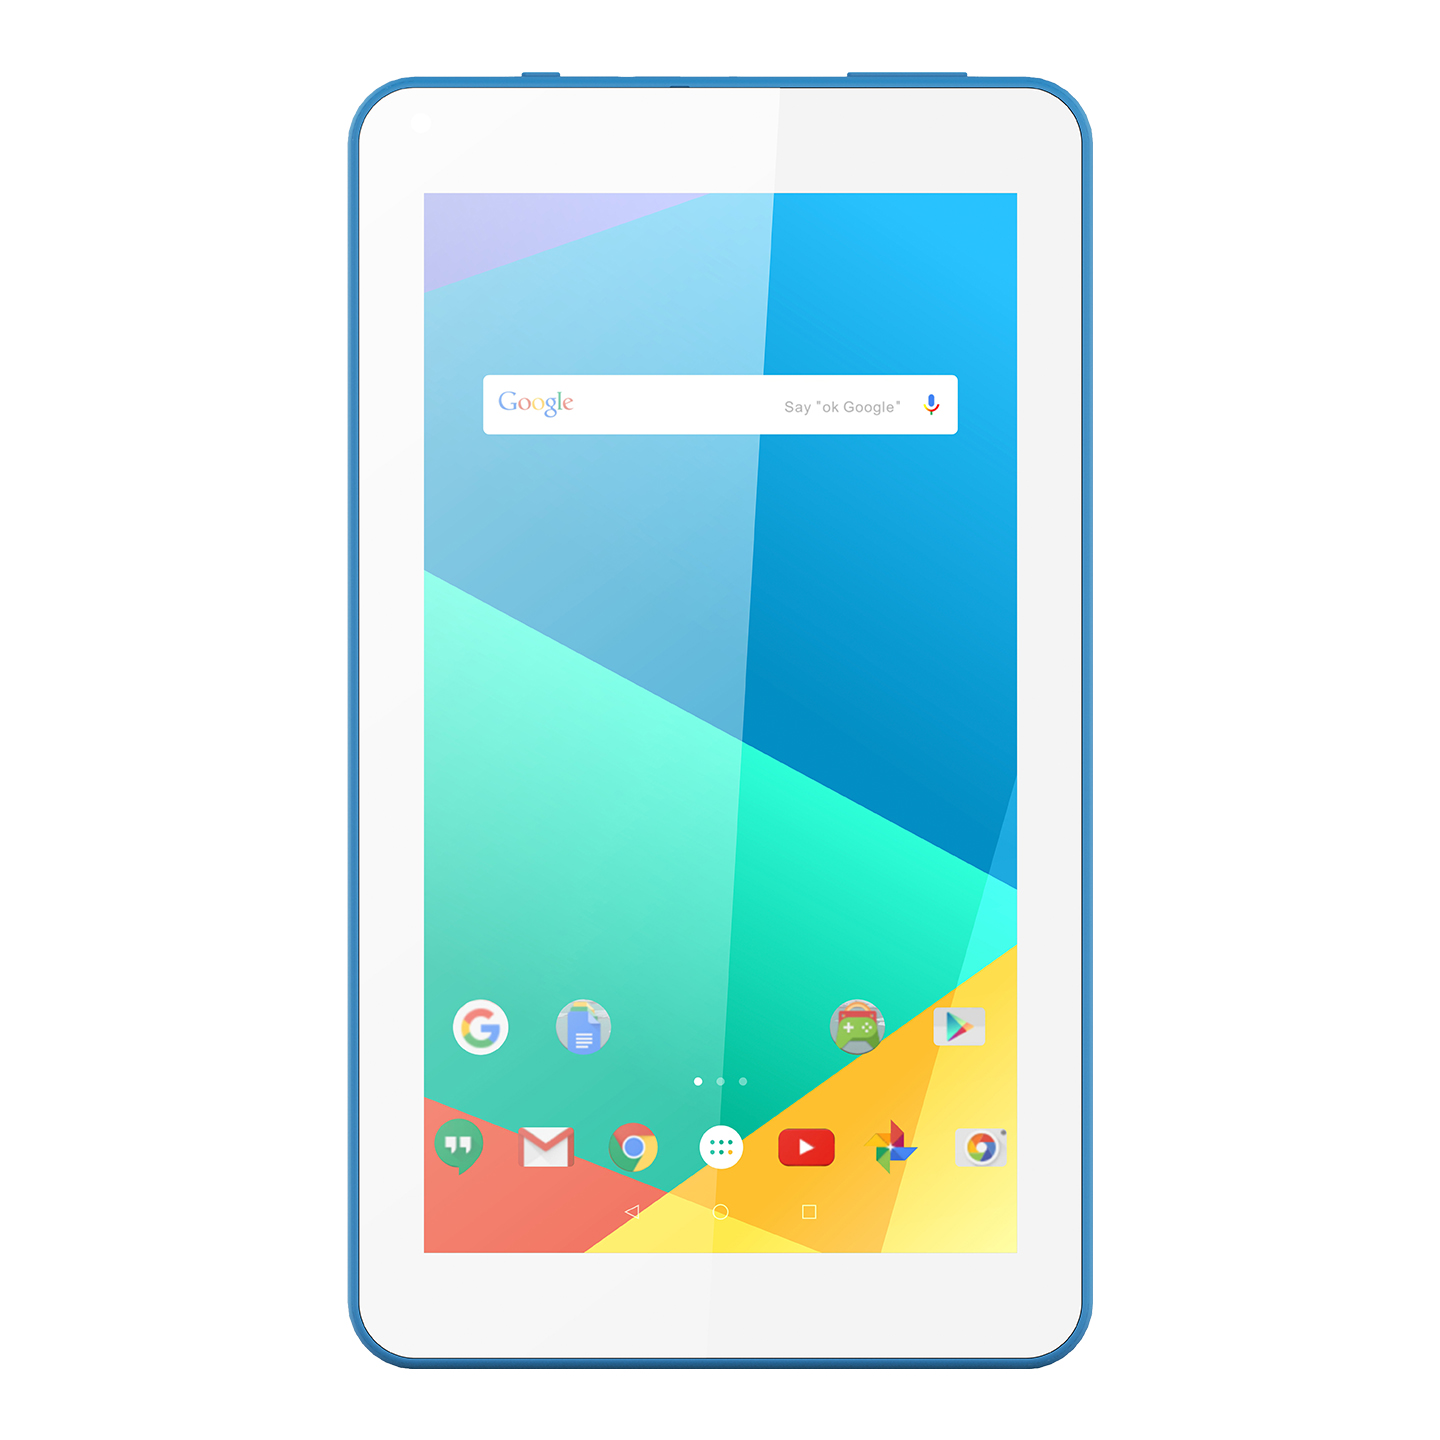 "EVEREST WİNNER PRO EW-2021 QUAD CORE 2GB DDR3 16GB WIFI/BT 7"" 1024X600 CIFT KAMERA BEYAZ/MAVİ ANDROID 10.0 GO TABLET"